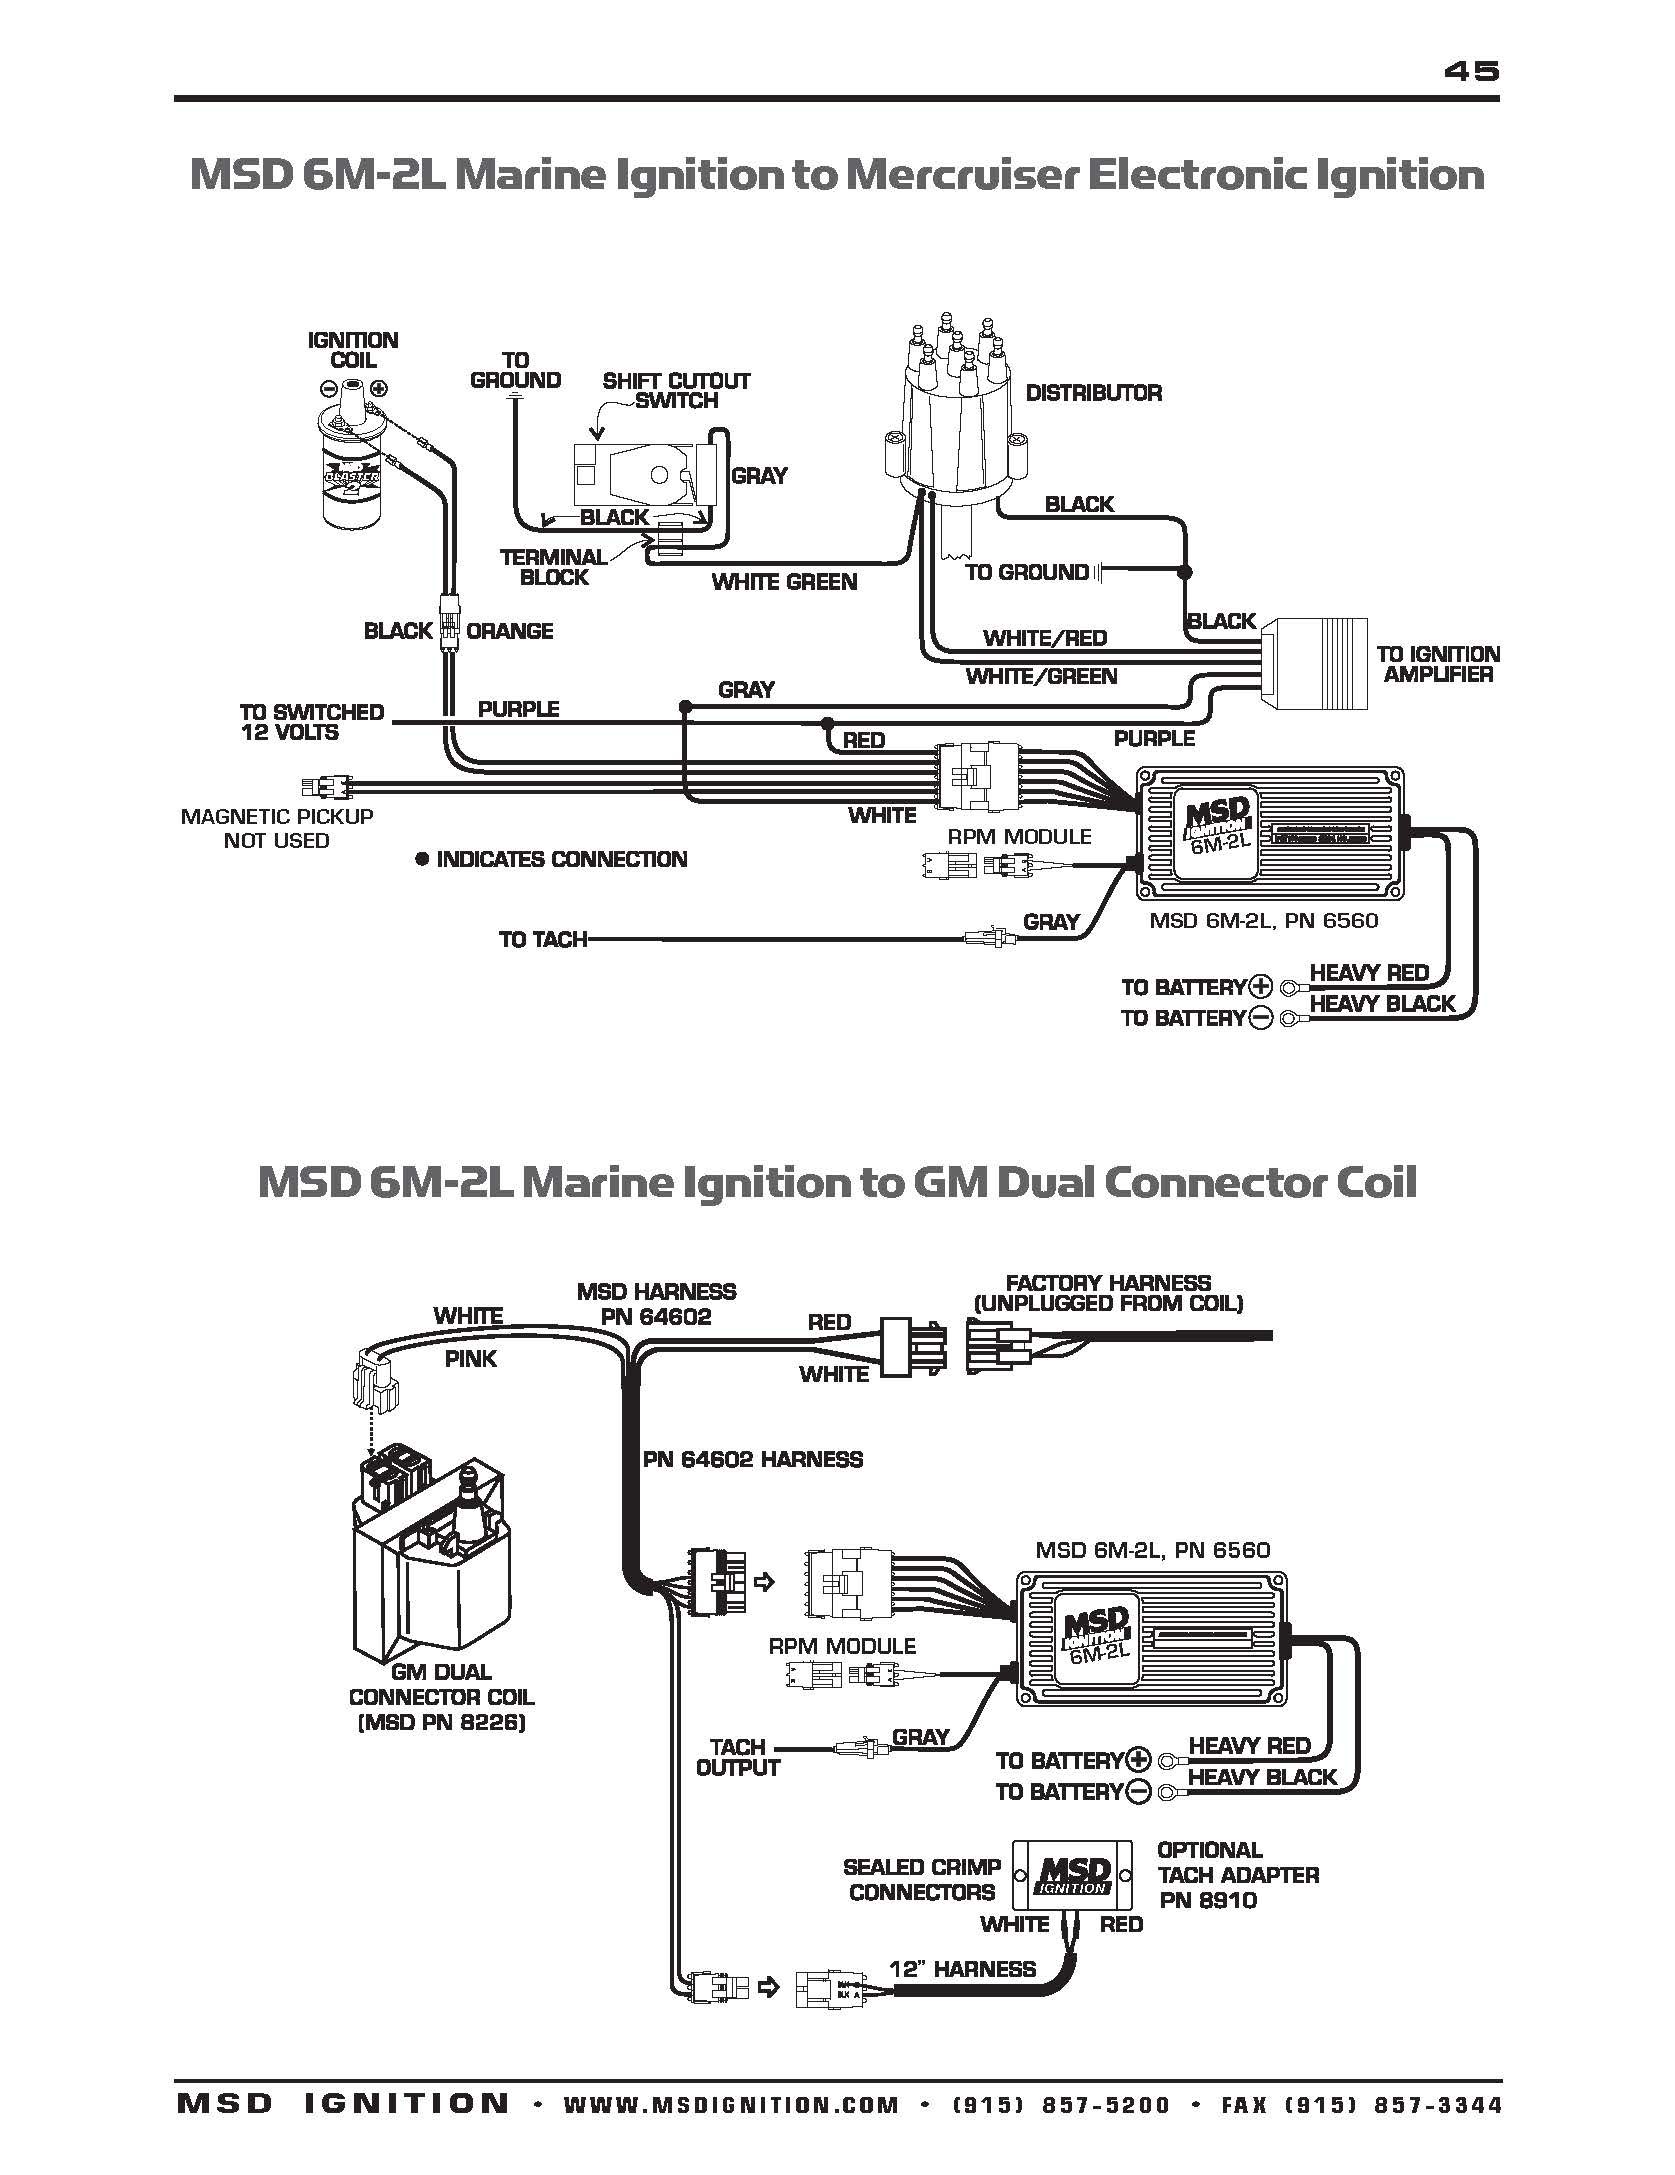 boost msd digital 6al wiring diagram or 5118  msd ignition wiring diagram for cdi wiring diagram  msd ignition wiring diagram for cdi